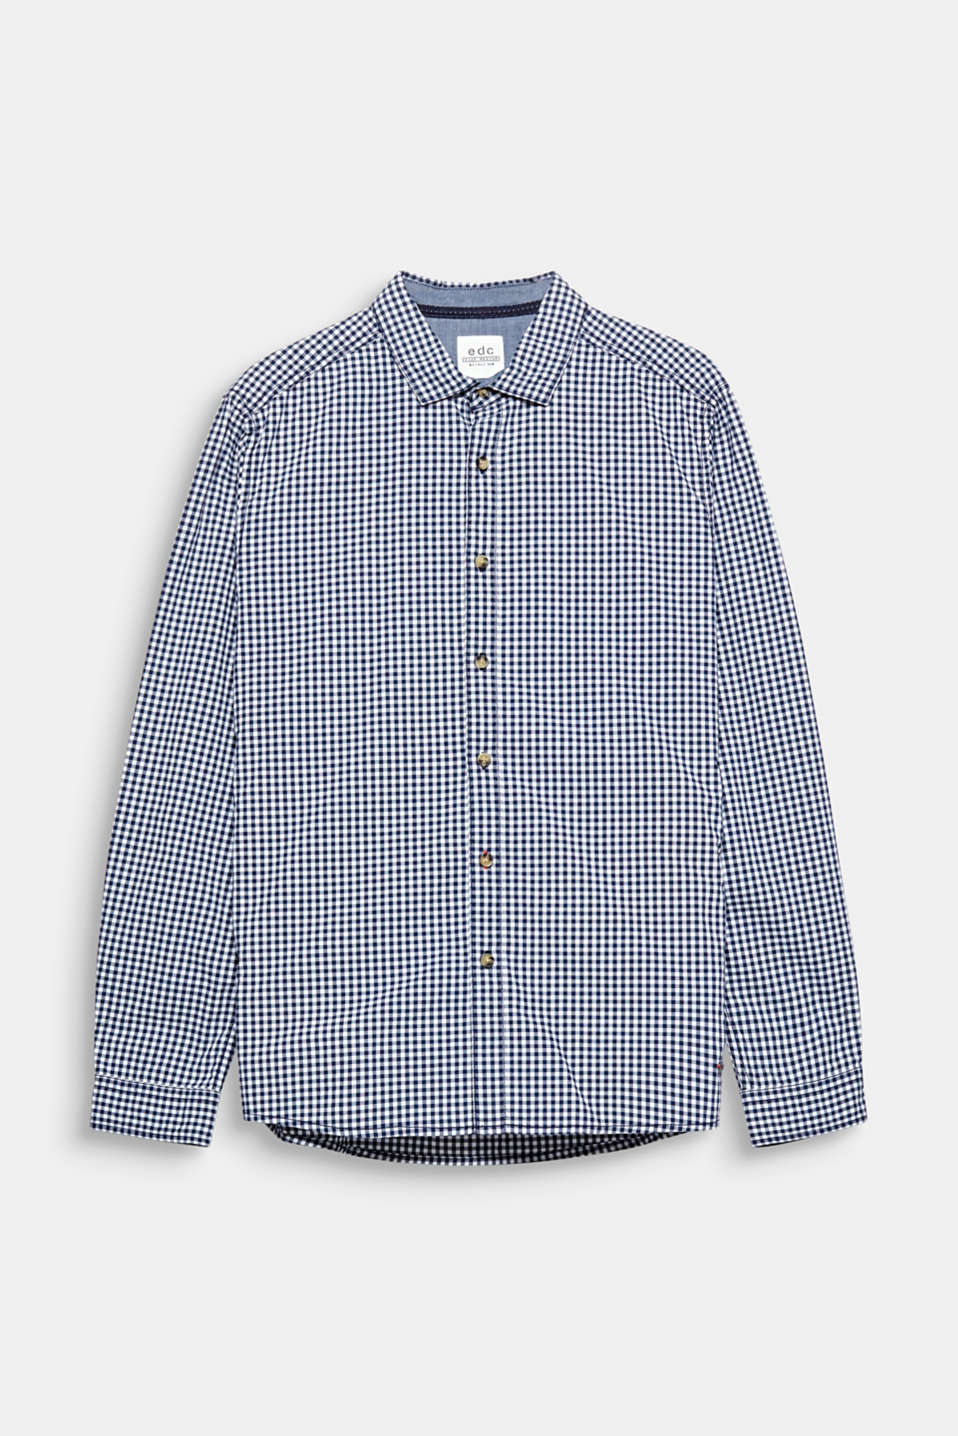 Basic shirt in premium cotton with small checks